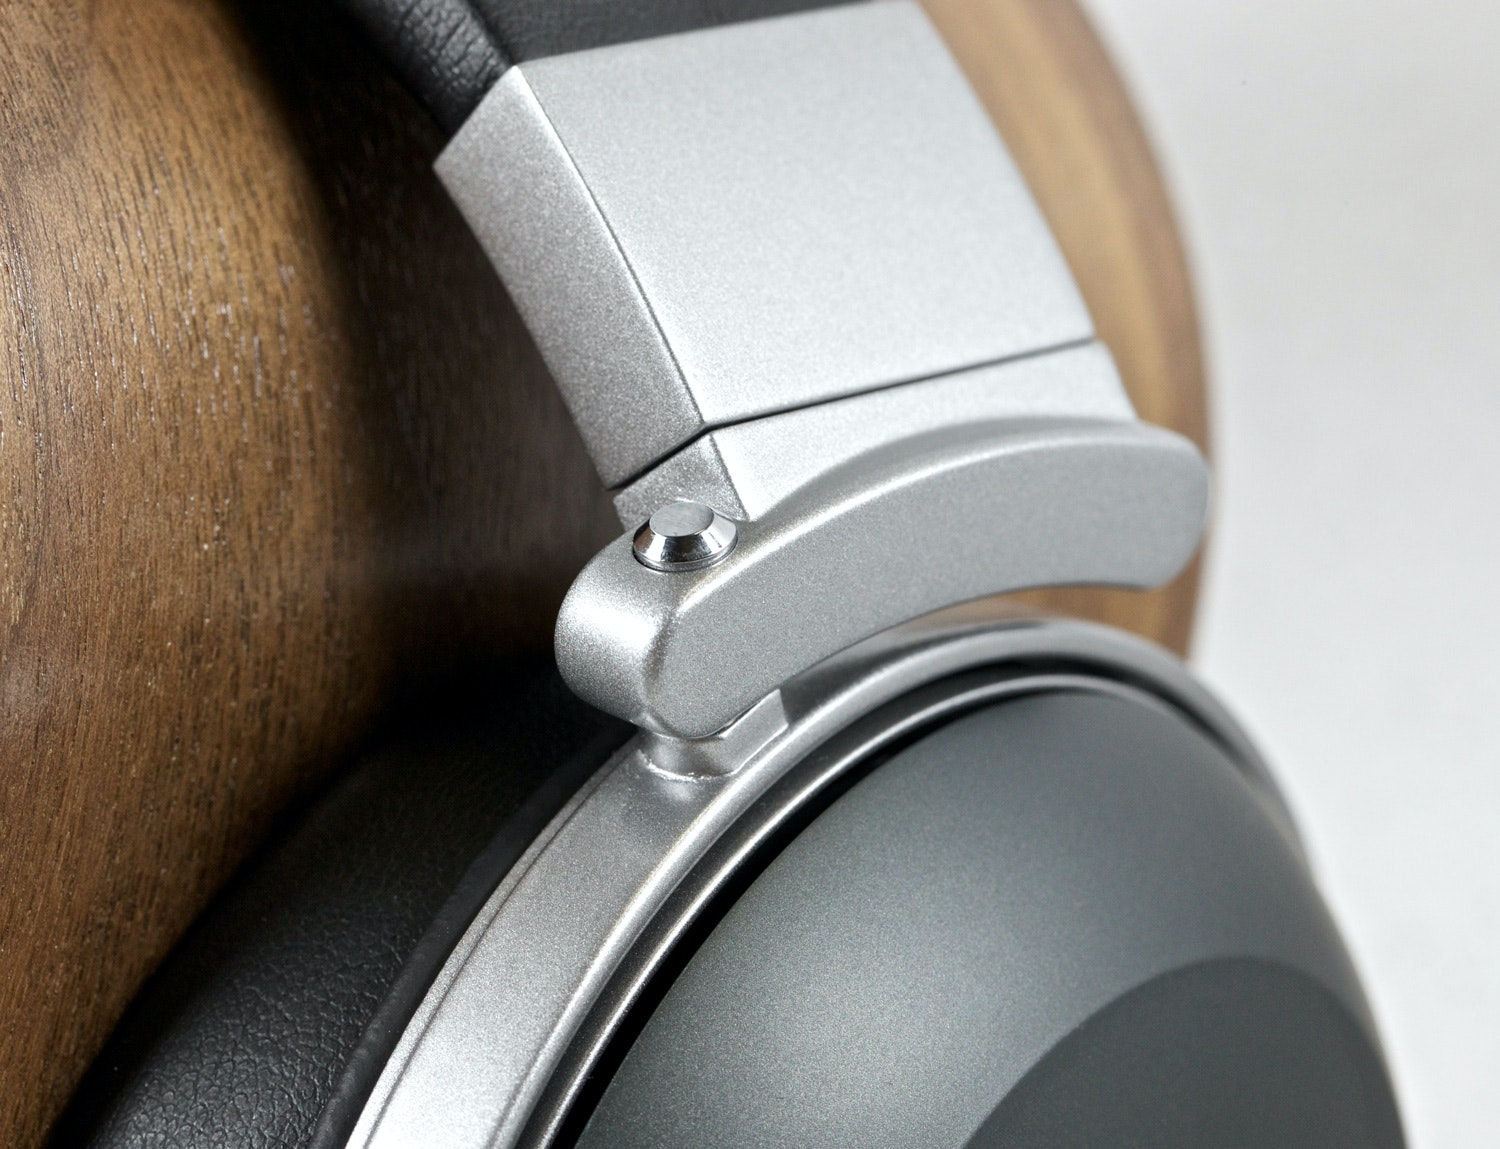 Denon D2000 Audiophile Headphones